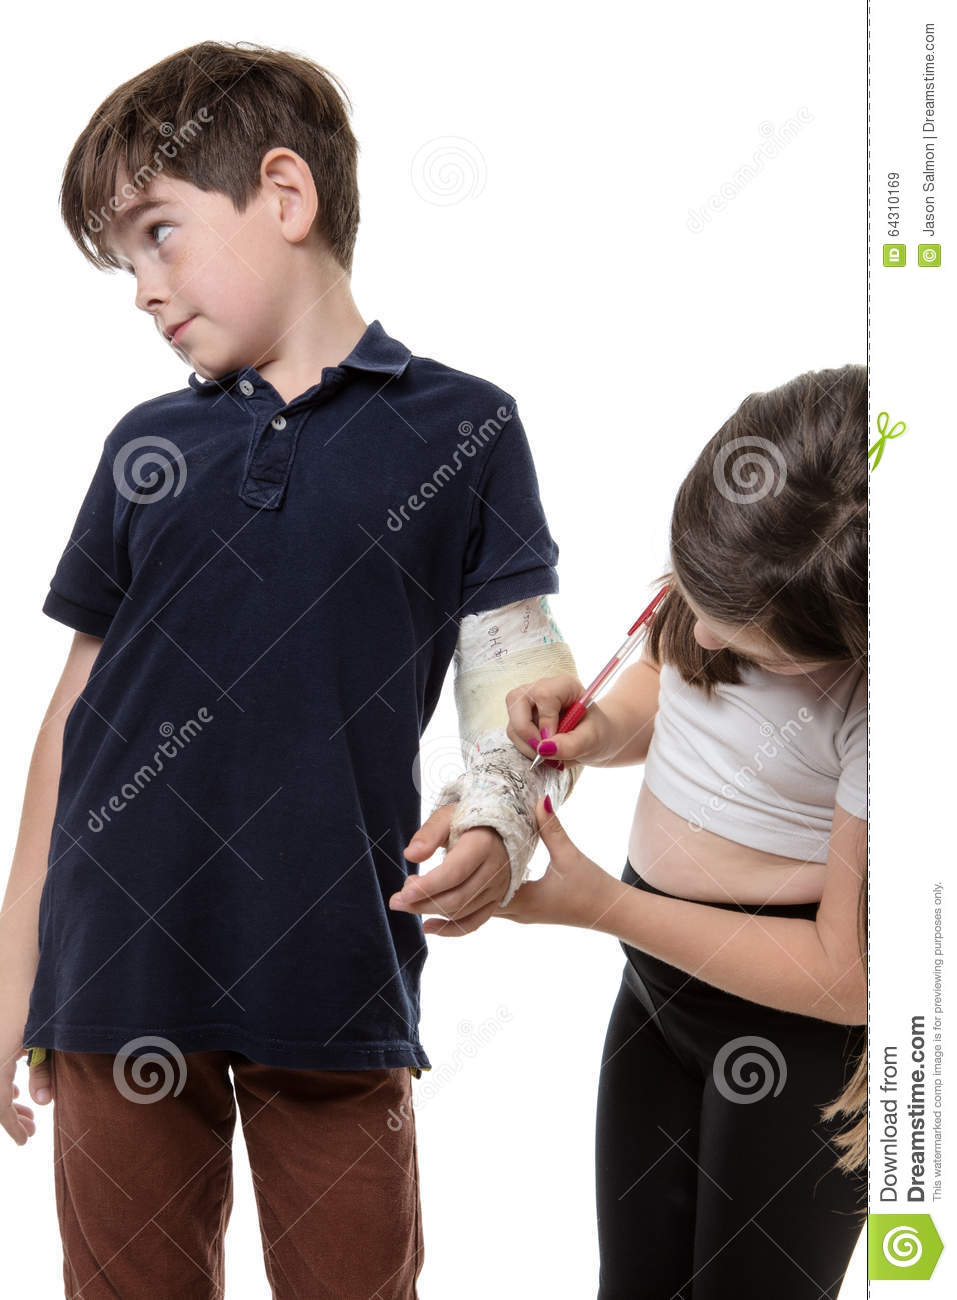 Girl Drawing On Her Friend's Plaster Cast  Stock Image - Image of